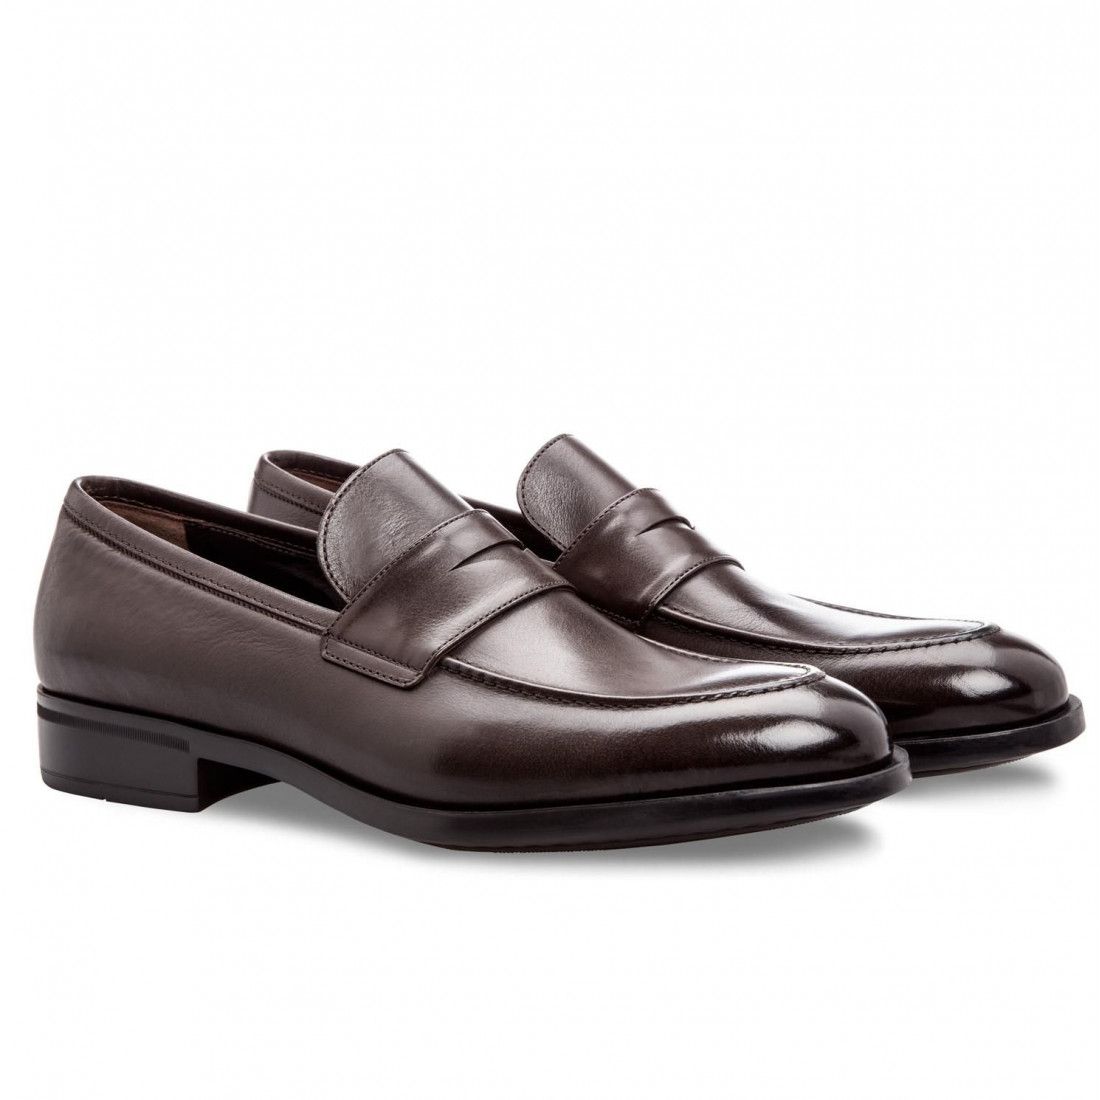 loafers man moreschi sligodark brown 4139